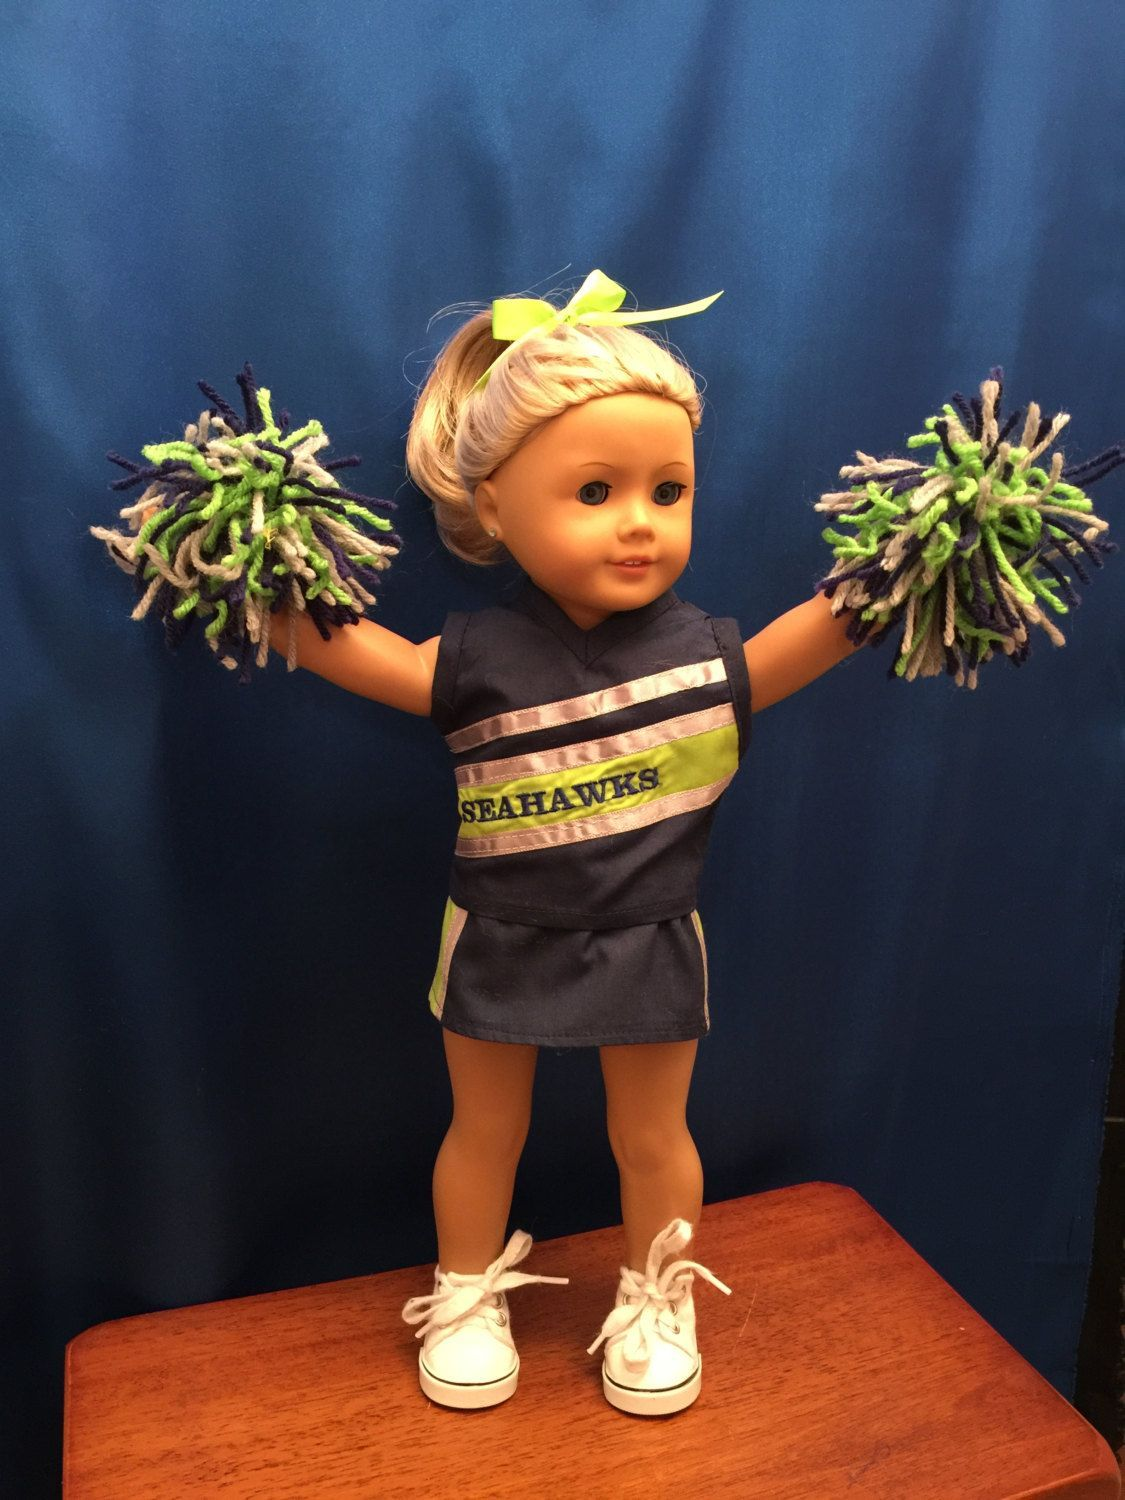 Homemade Doll Clothes For 18 Inch Dolls Like American Girl Dolls: Seahawks Cheerleading Outfit Made From Jelly Bean Soup Pattern by CutzieDollFashions on Etsy #18inchcheerleaderclothes Homemade Doll Clothes For 18 Inch Dolls Like American Girl Dolls: Seahawks Cheerleading Outfit Made From Jelly Bean Soup Pattern by CutzieDollFashions on Etsy #18inchcheerleaderclothes